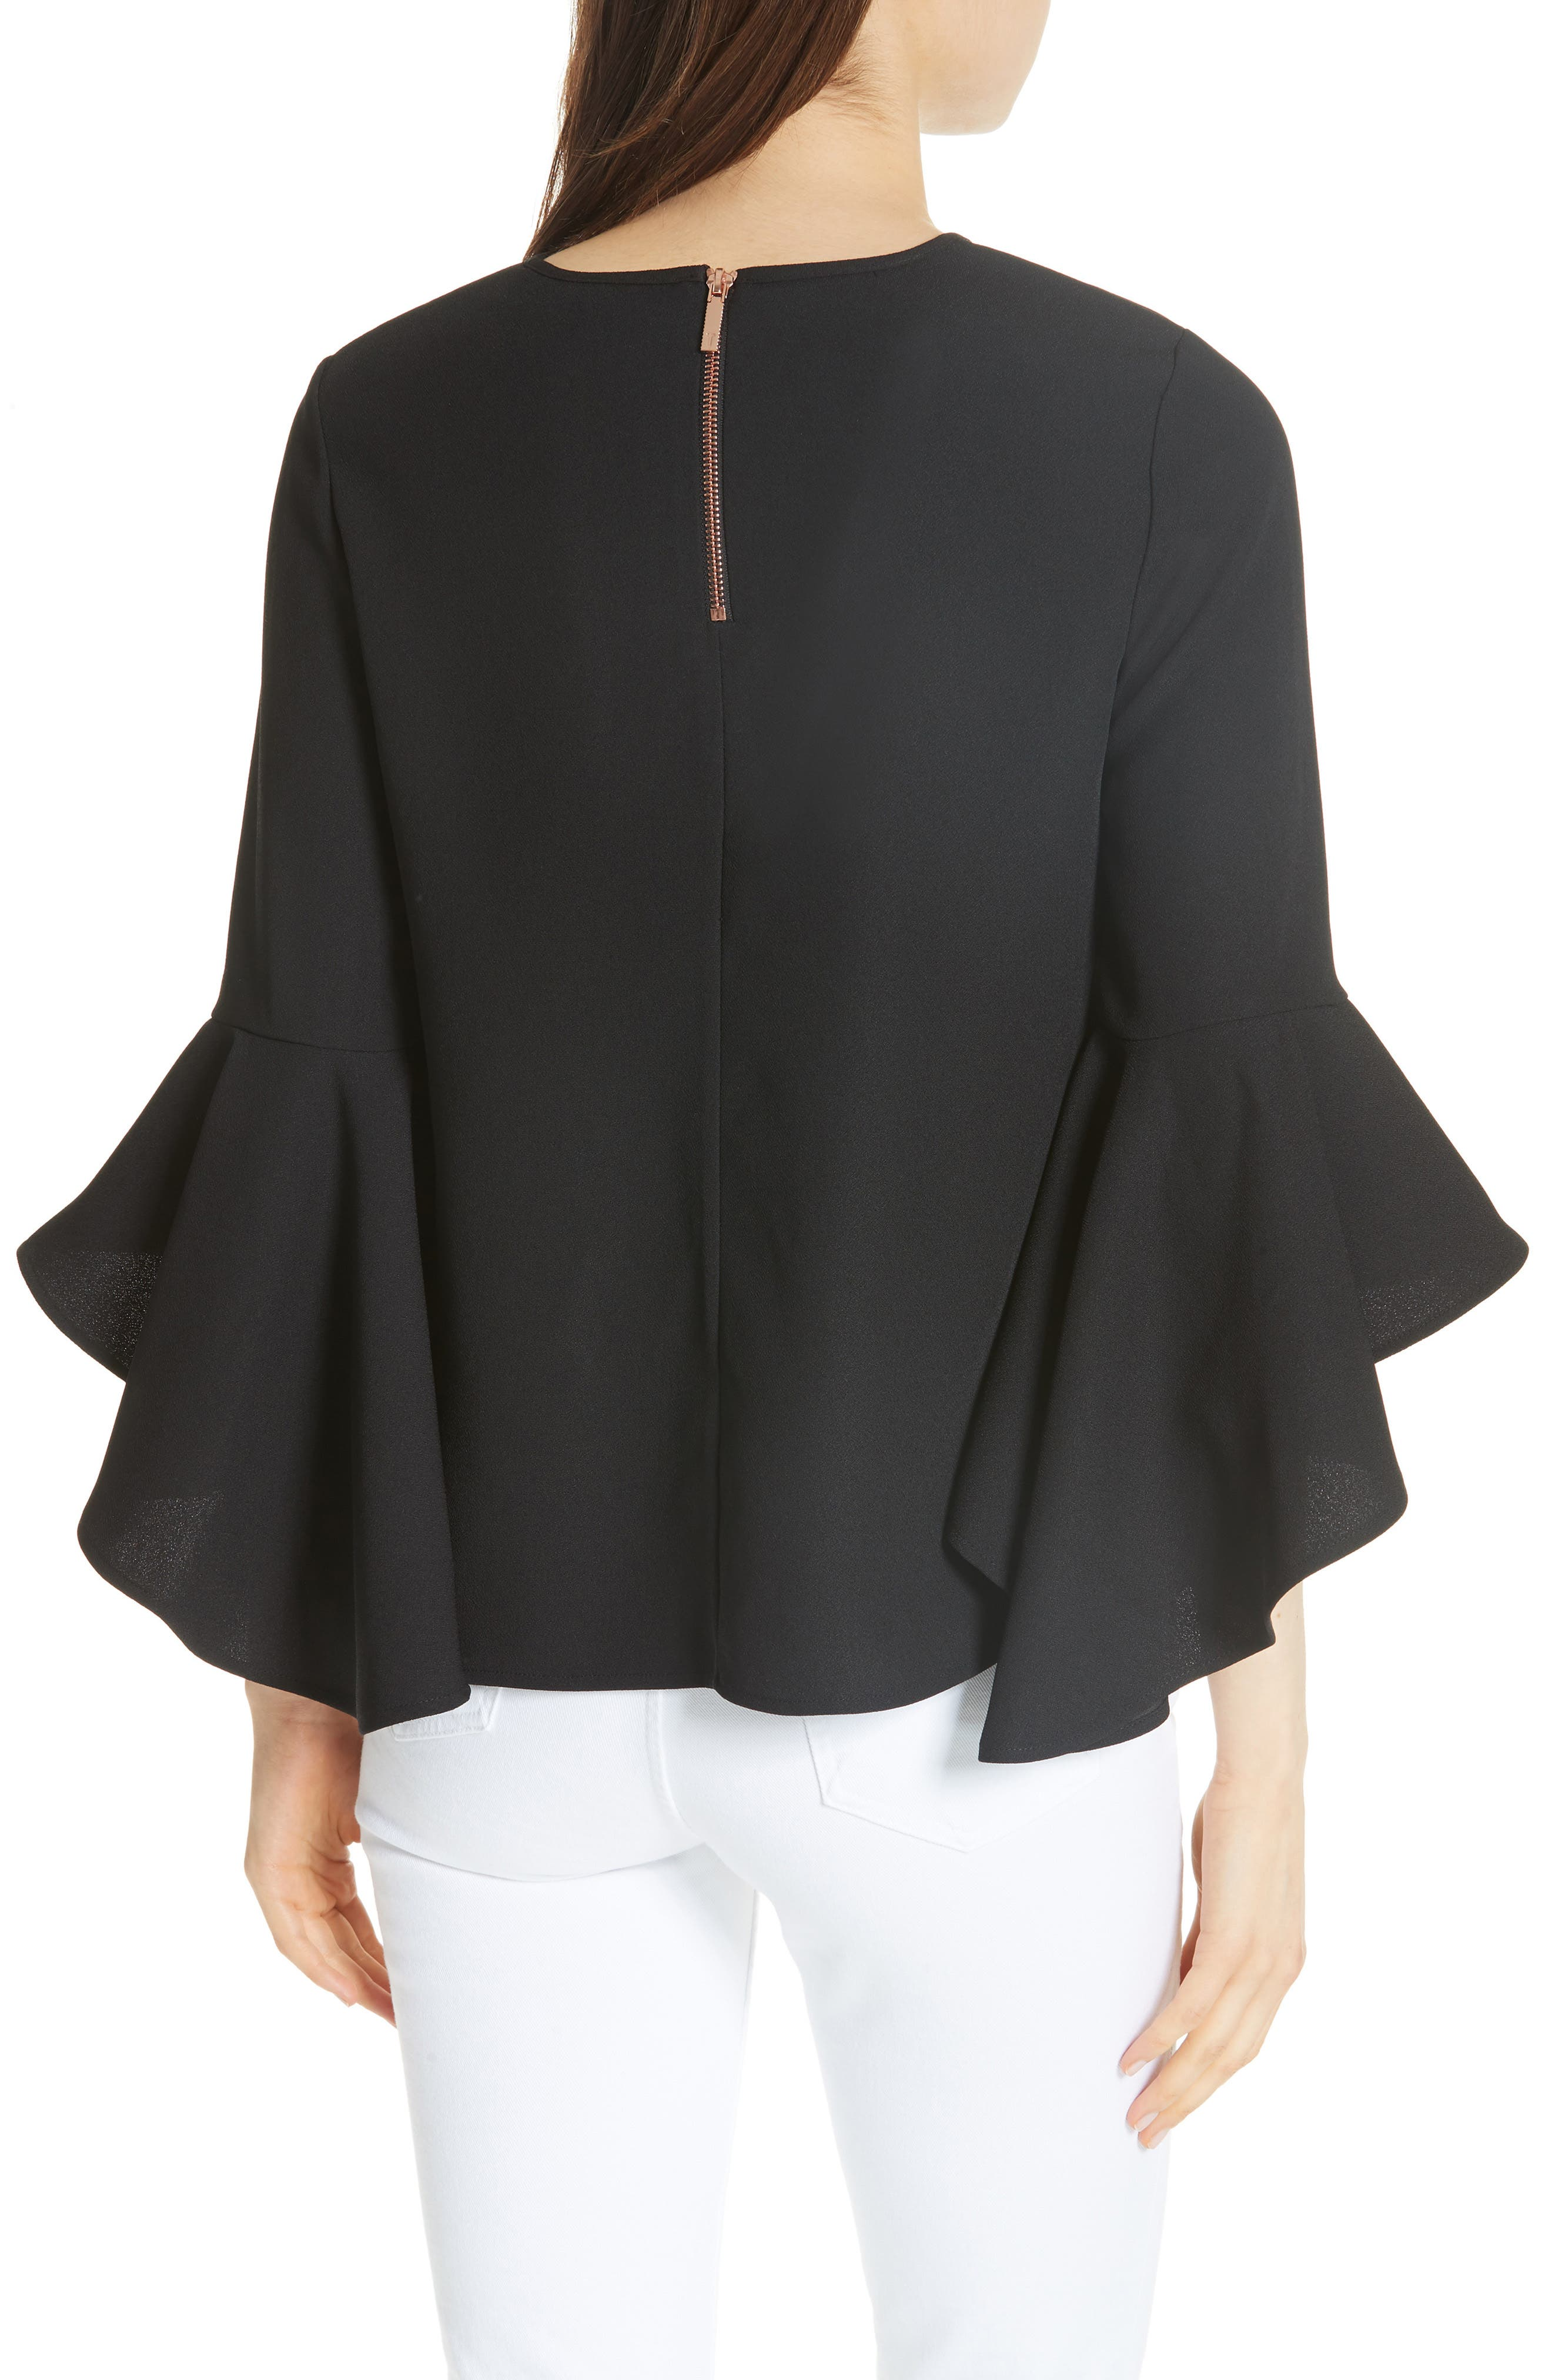 TED BAKER LONDON,                             Suuzan Tranquility Waterfall Top,                             Alternate thumbnail 2, color,                             001